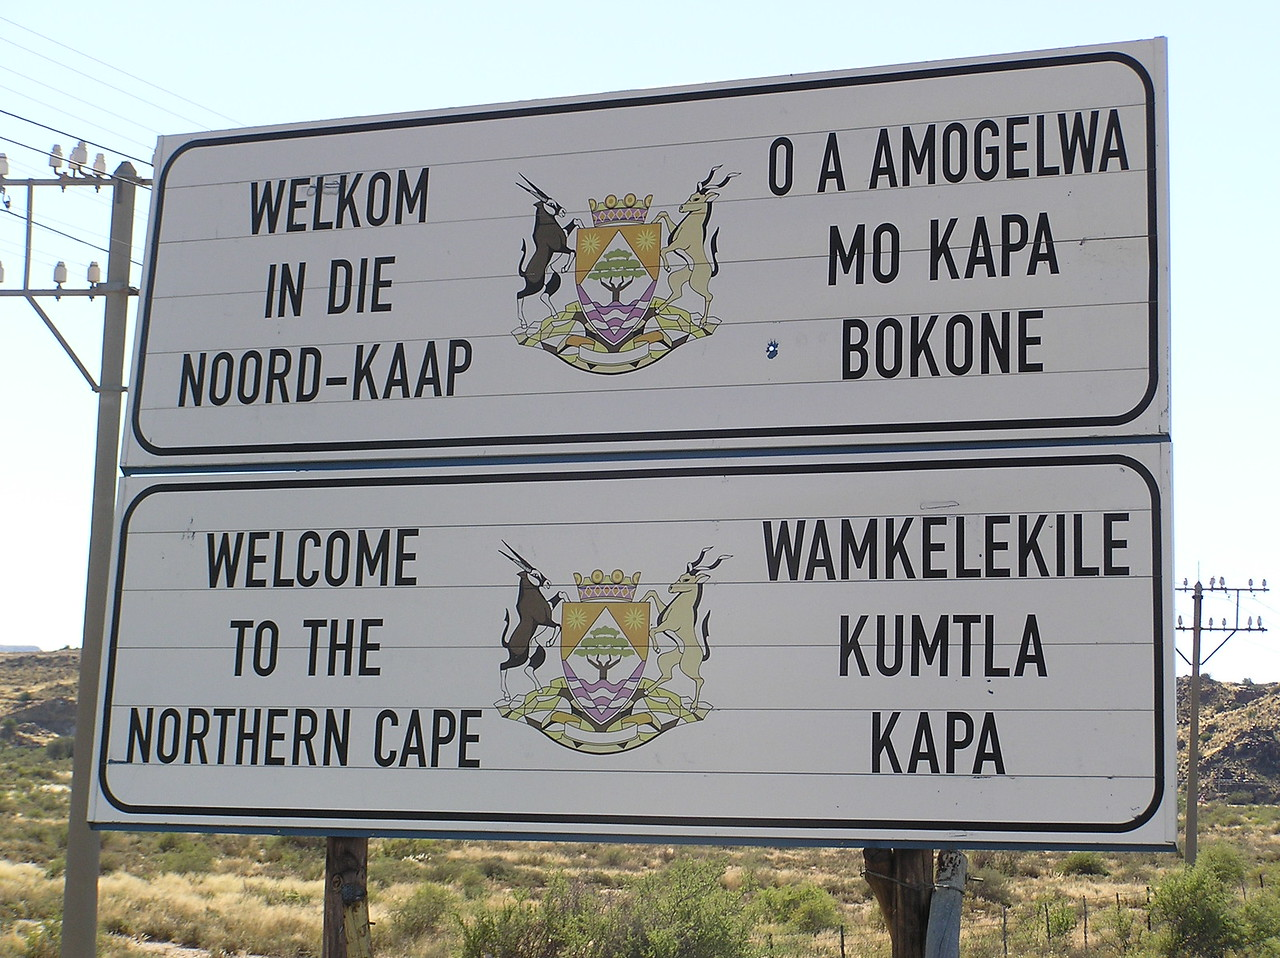 Multilingual highway signs - English, Afrikaans, Xhosa and ?<br /> <br /> At the Three Sisters, we were happy to leave the busy N1 highway and start our journey north along the N12 towards the town of Upington, which lies 620km to the north of Karoo National Park. We were to spend the night in Upington before venturing into Kgalagadi Transfrontier Park. At the Three Sisters, we left the Western Cape (province) and crossed into the Northern Cape.